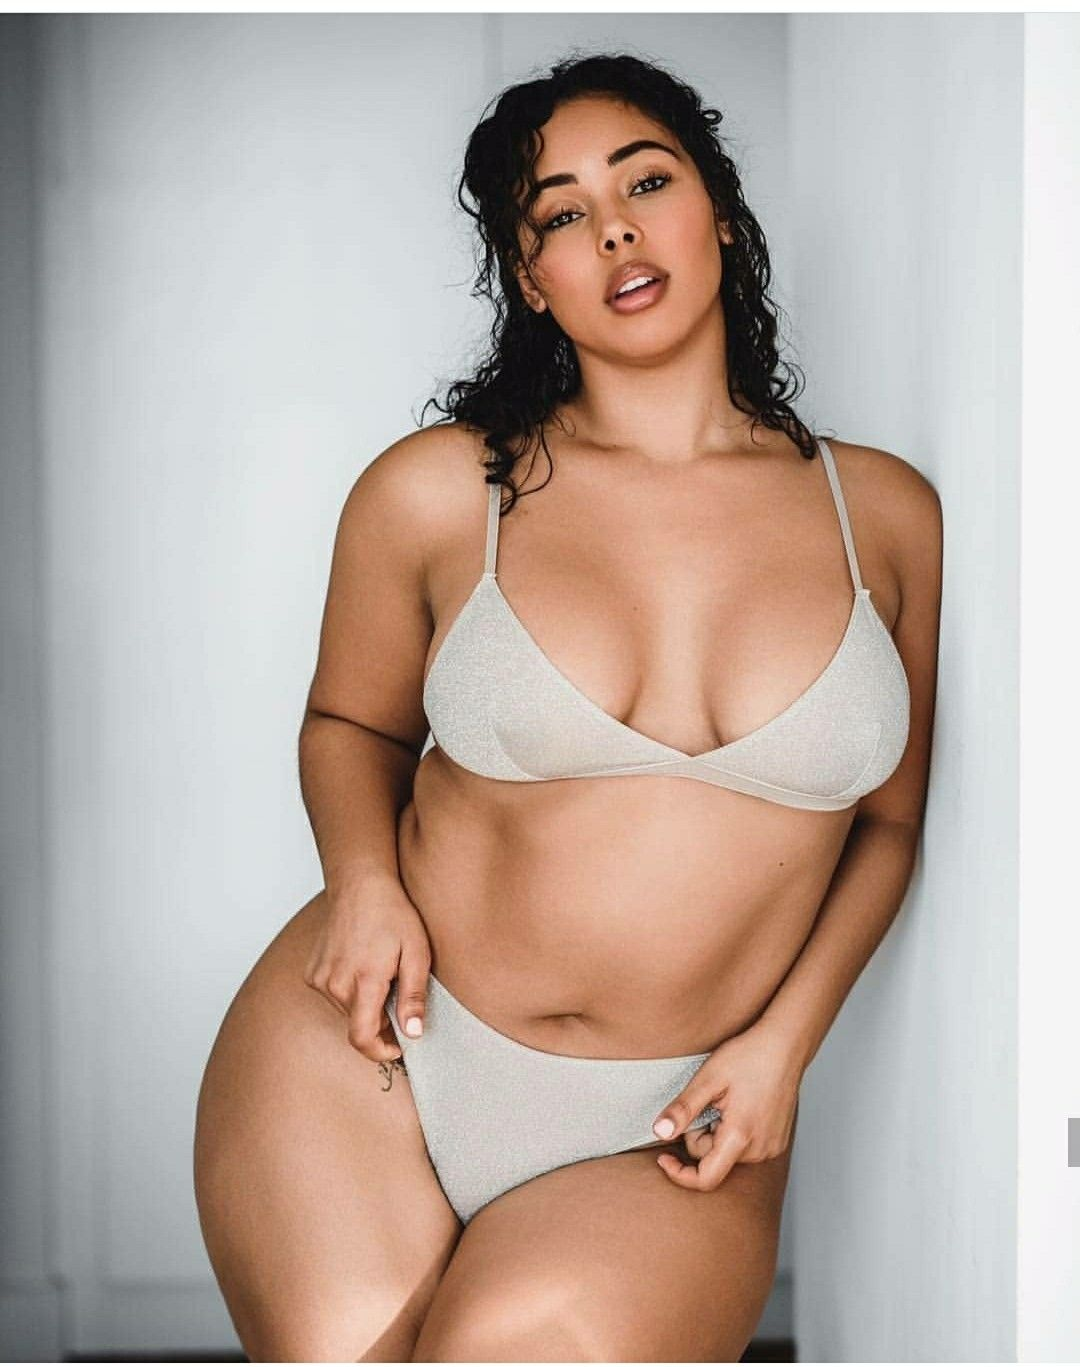 sexy chubby models